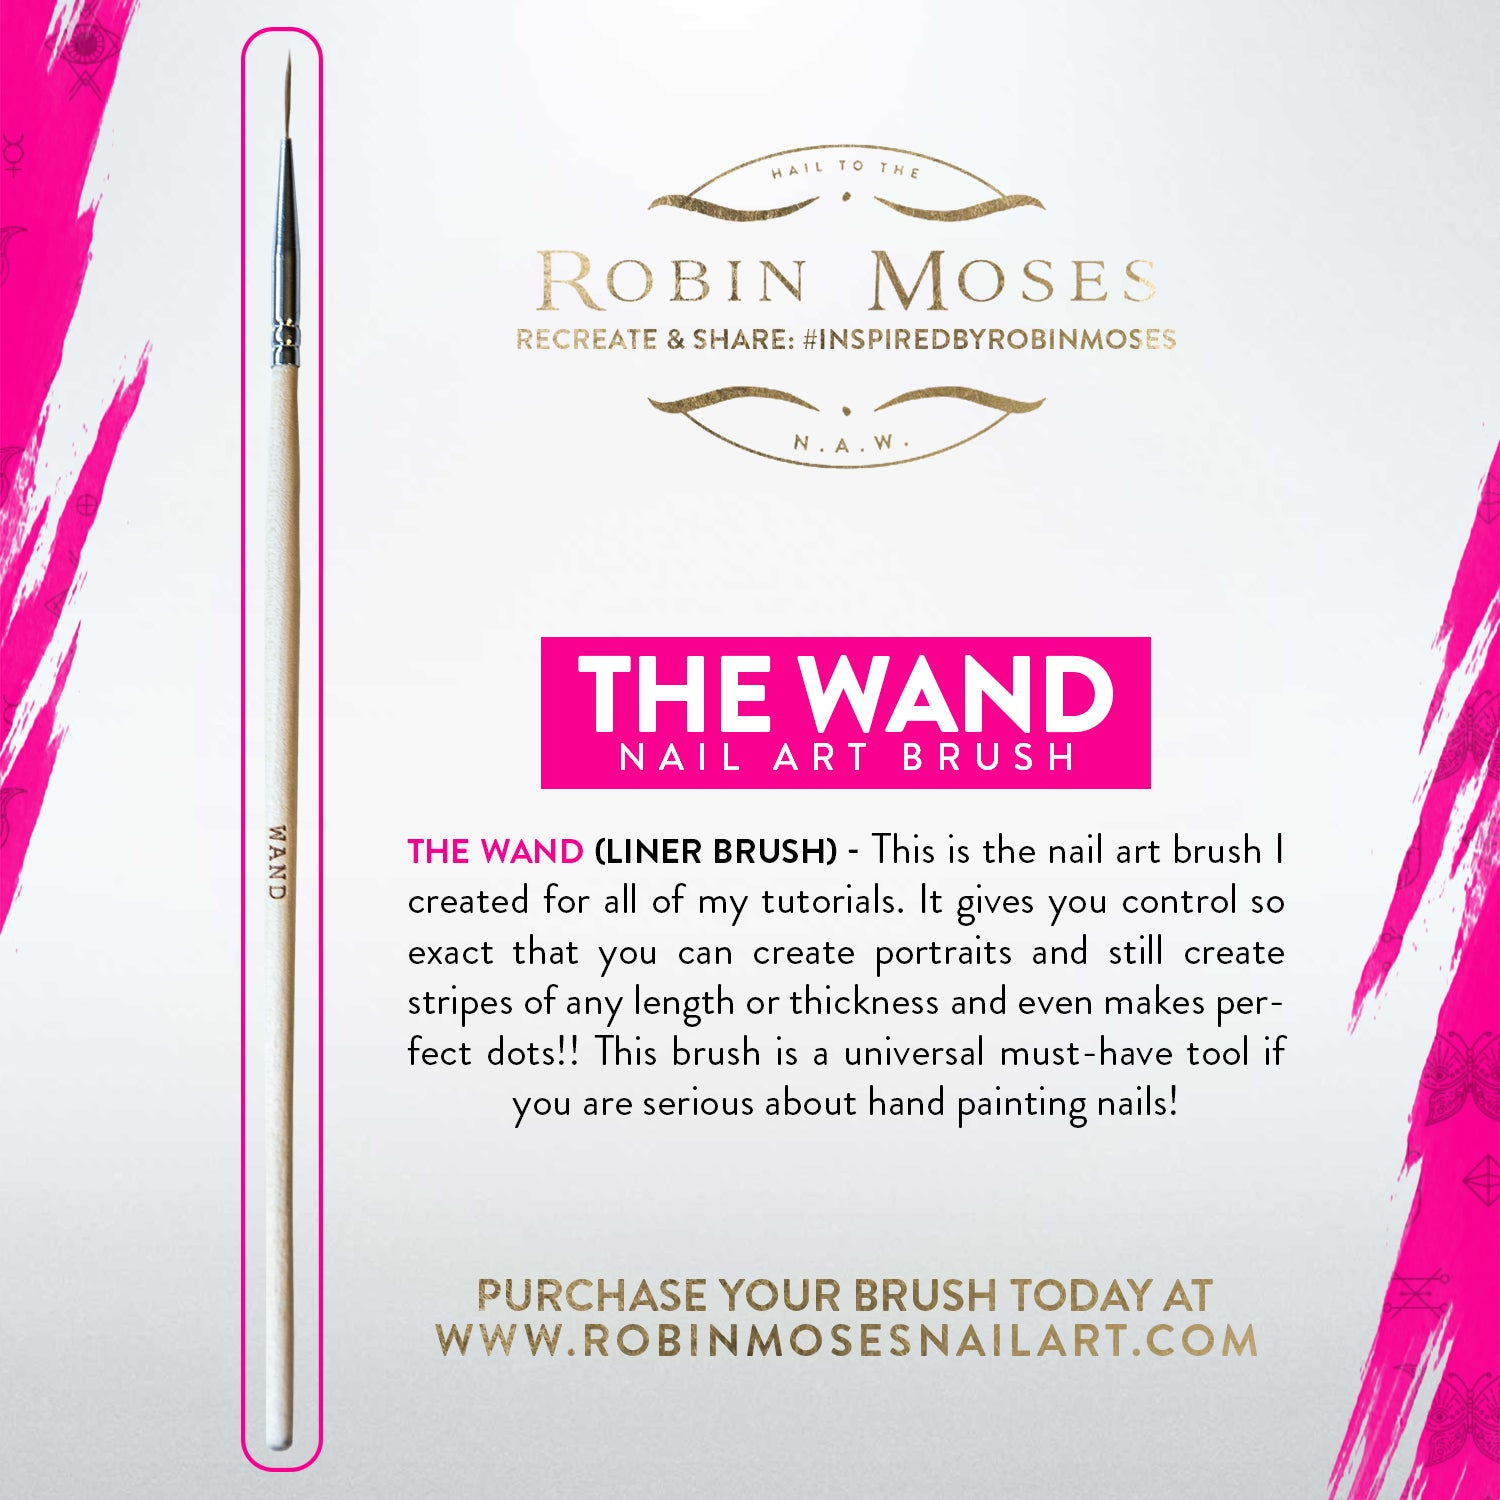 The Wand Nail Art Brush For Fine Lining By Robin Moses For Sale